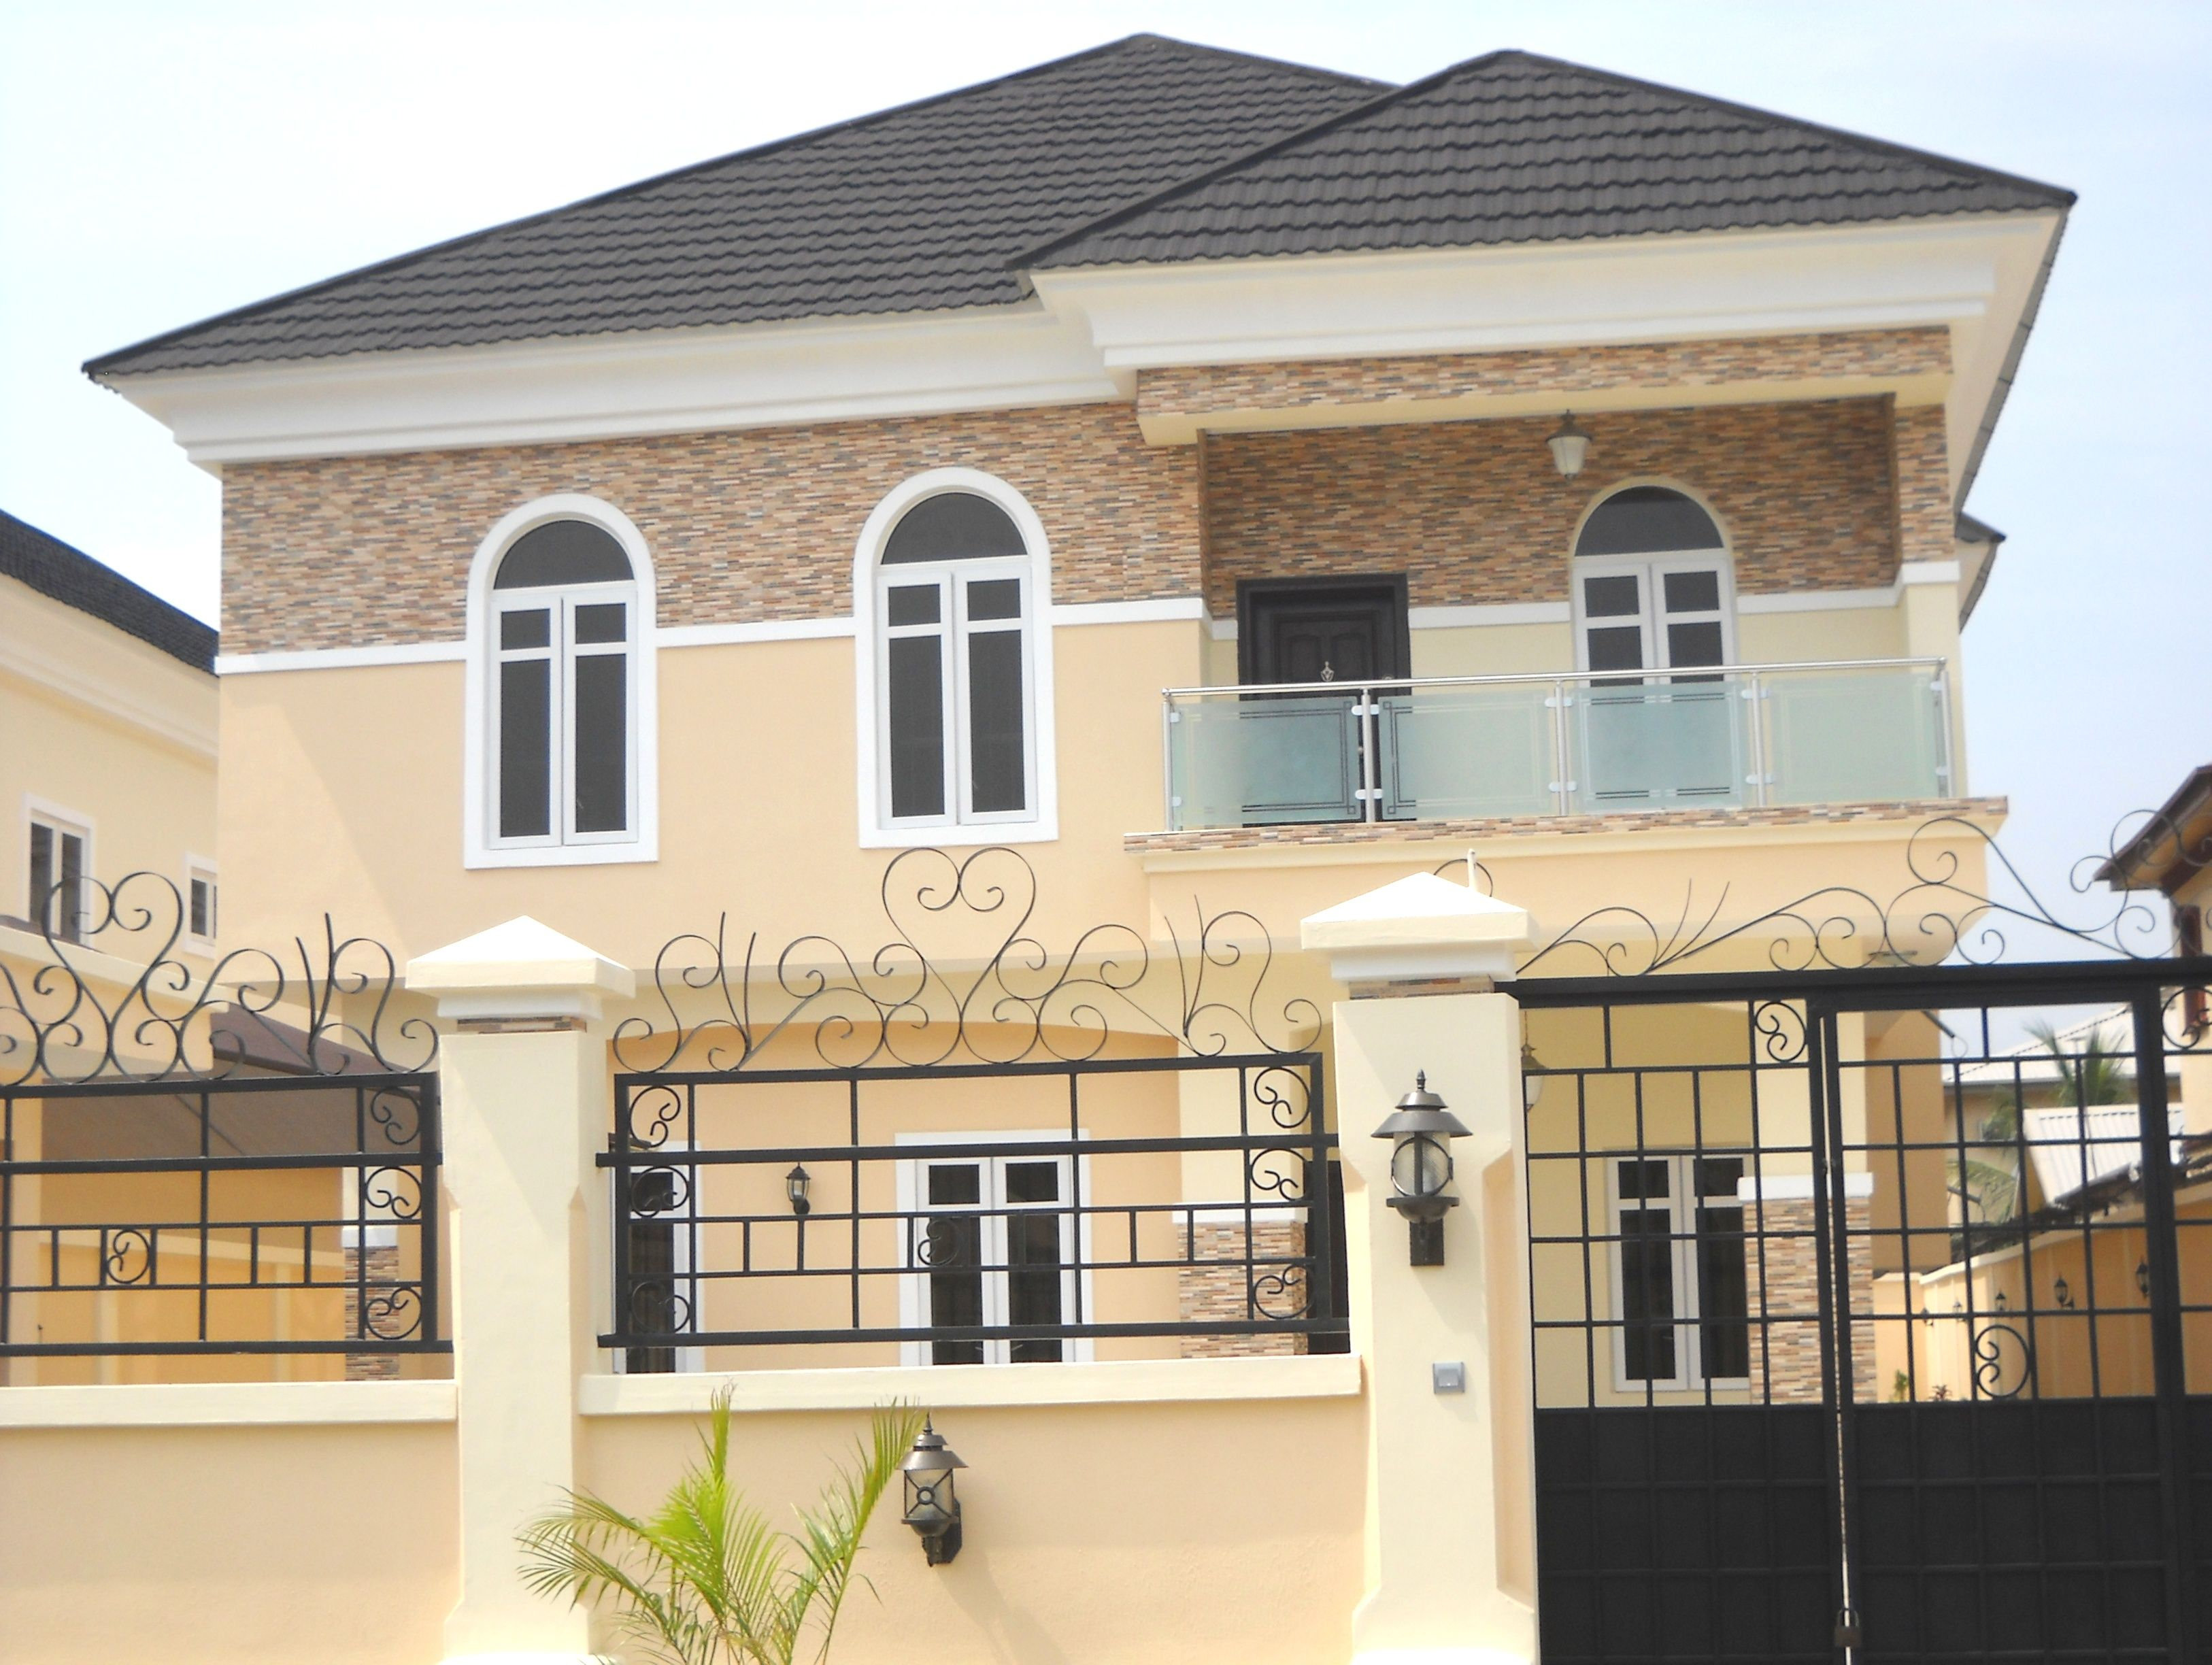 Own Beautiful Houses In Nigeria Village Lagos Island Lekki Abuja Goals Ambitions